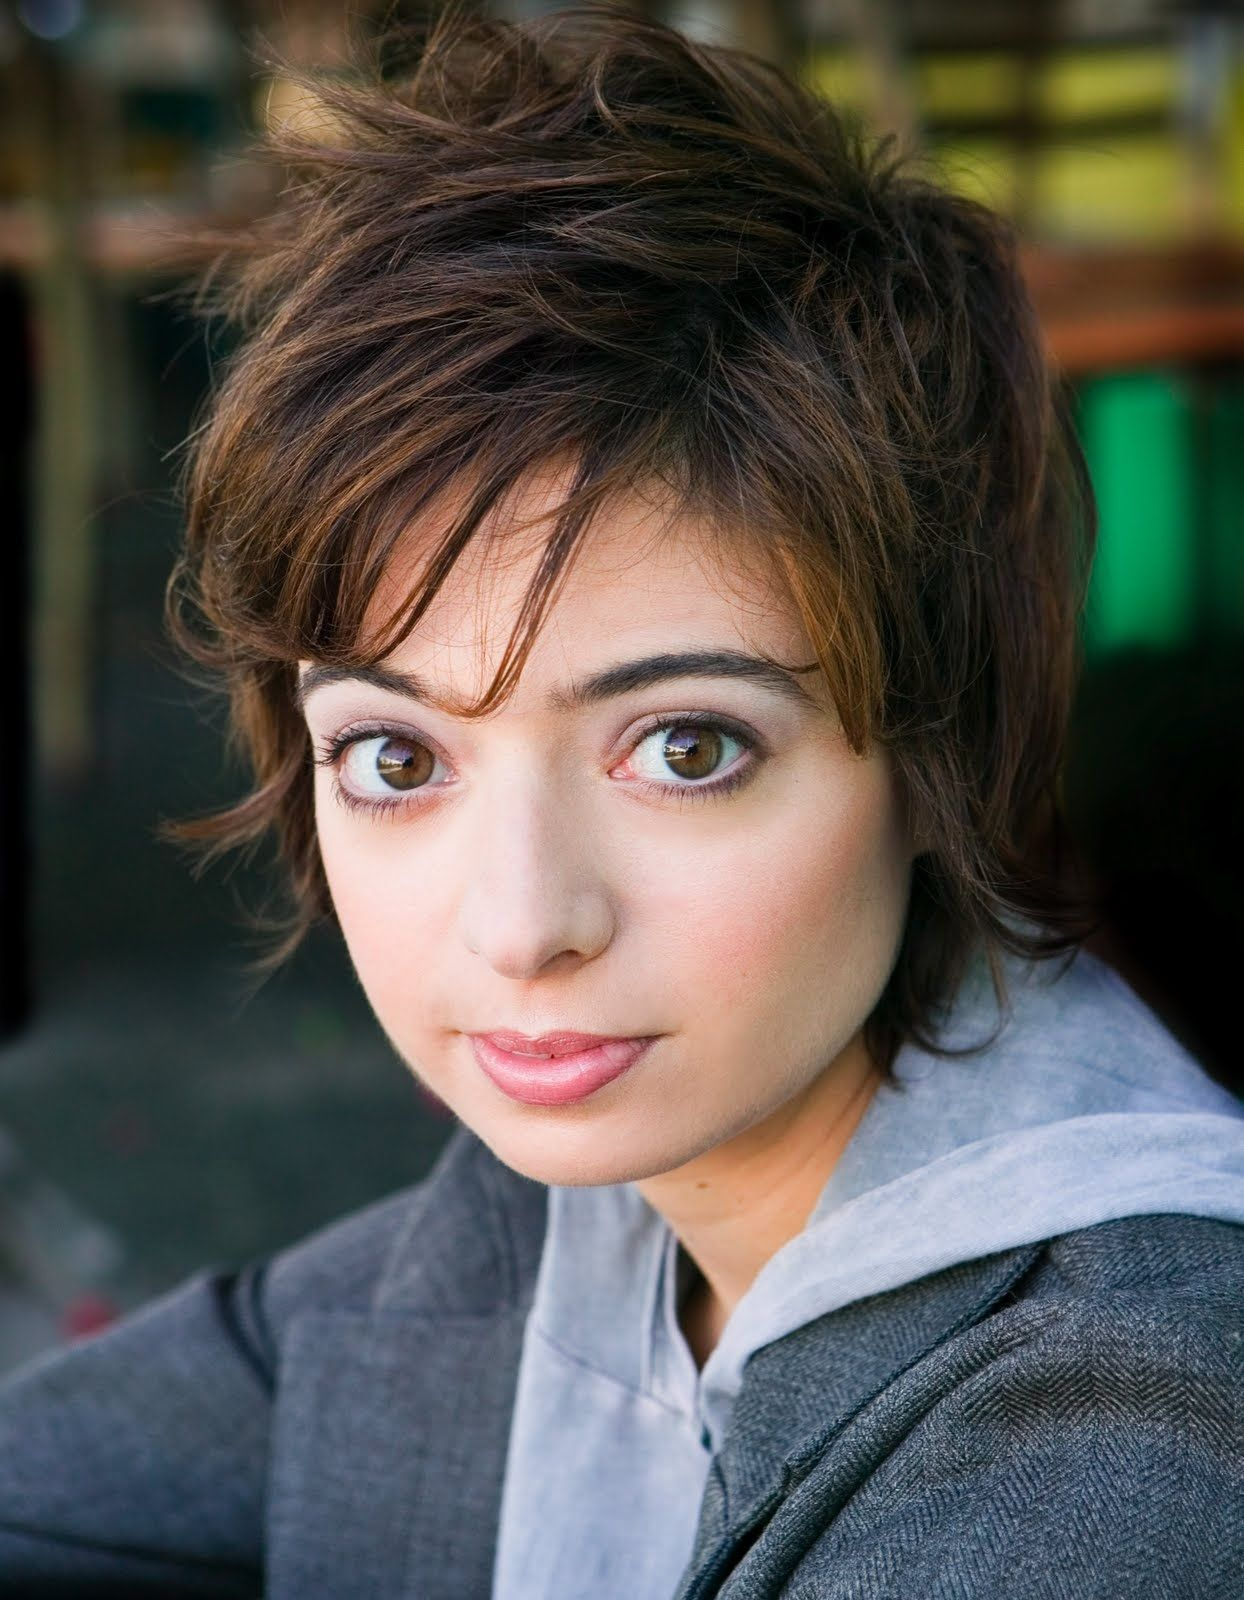 Selfie Kate Micucci nudes (93 photos), Pussy, Hot, Boobs, braless 2019